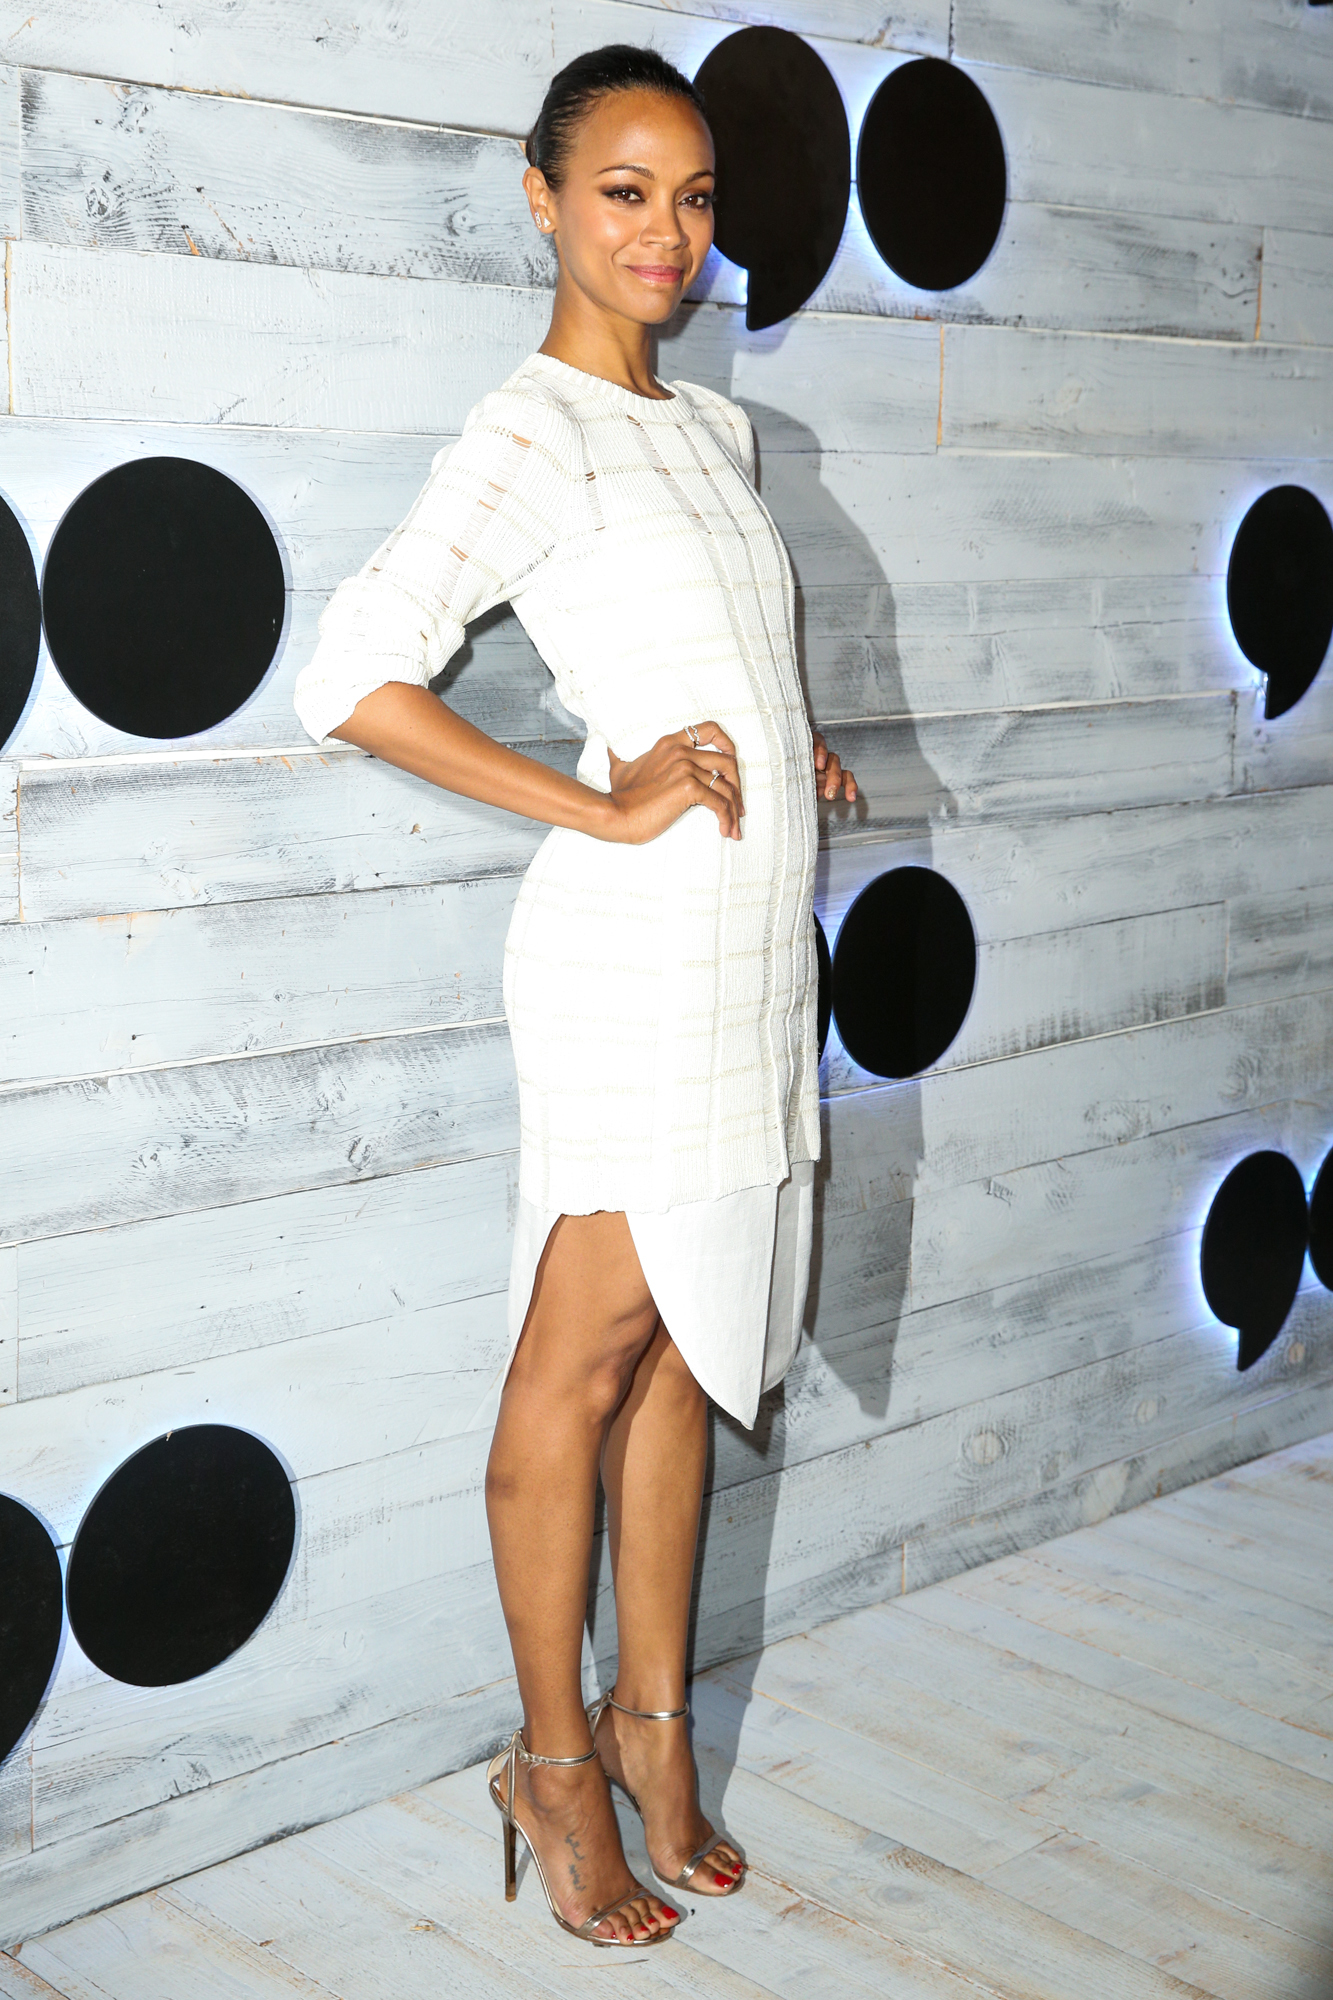 Zoe Saldana: When are women going to stick together on equal rights?